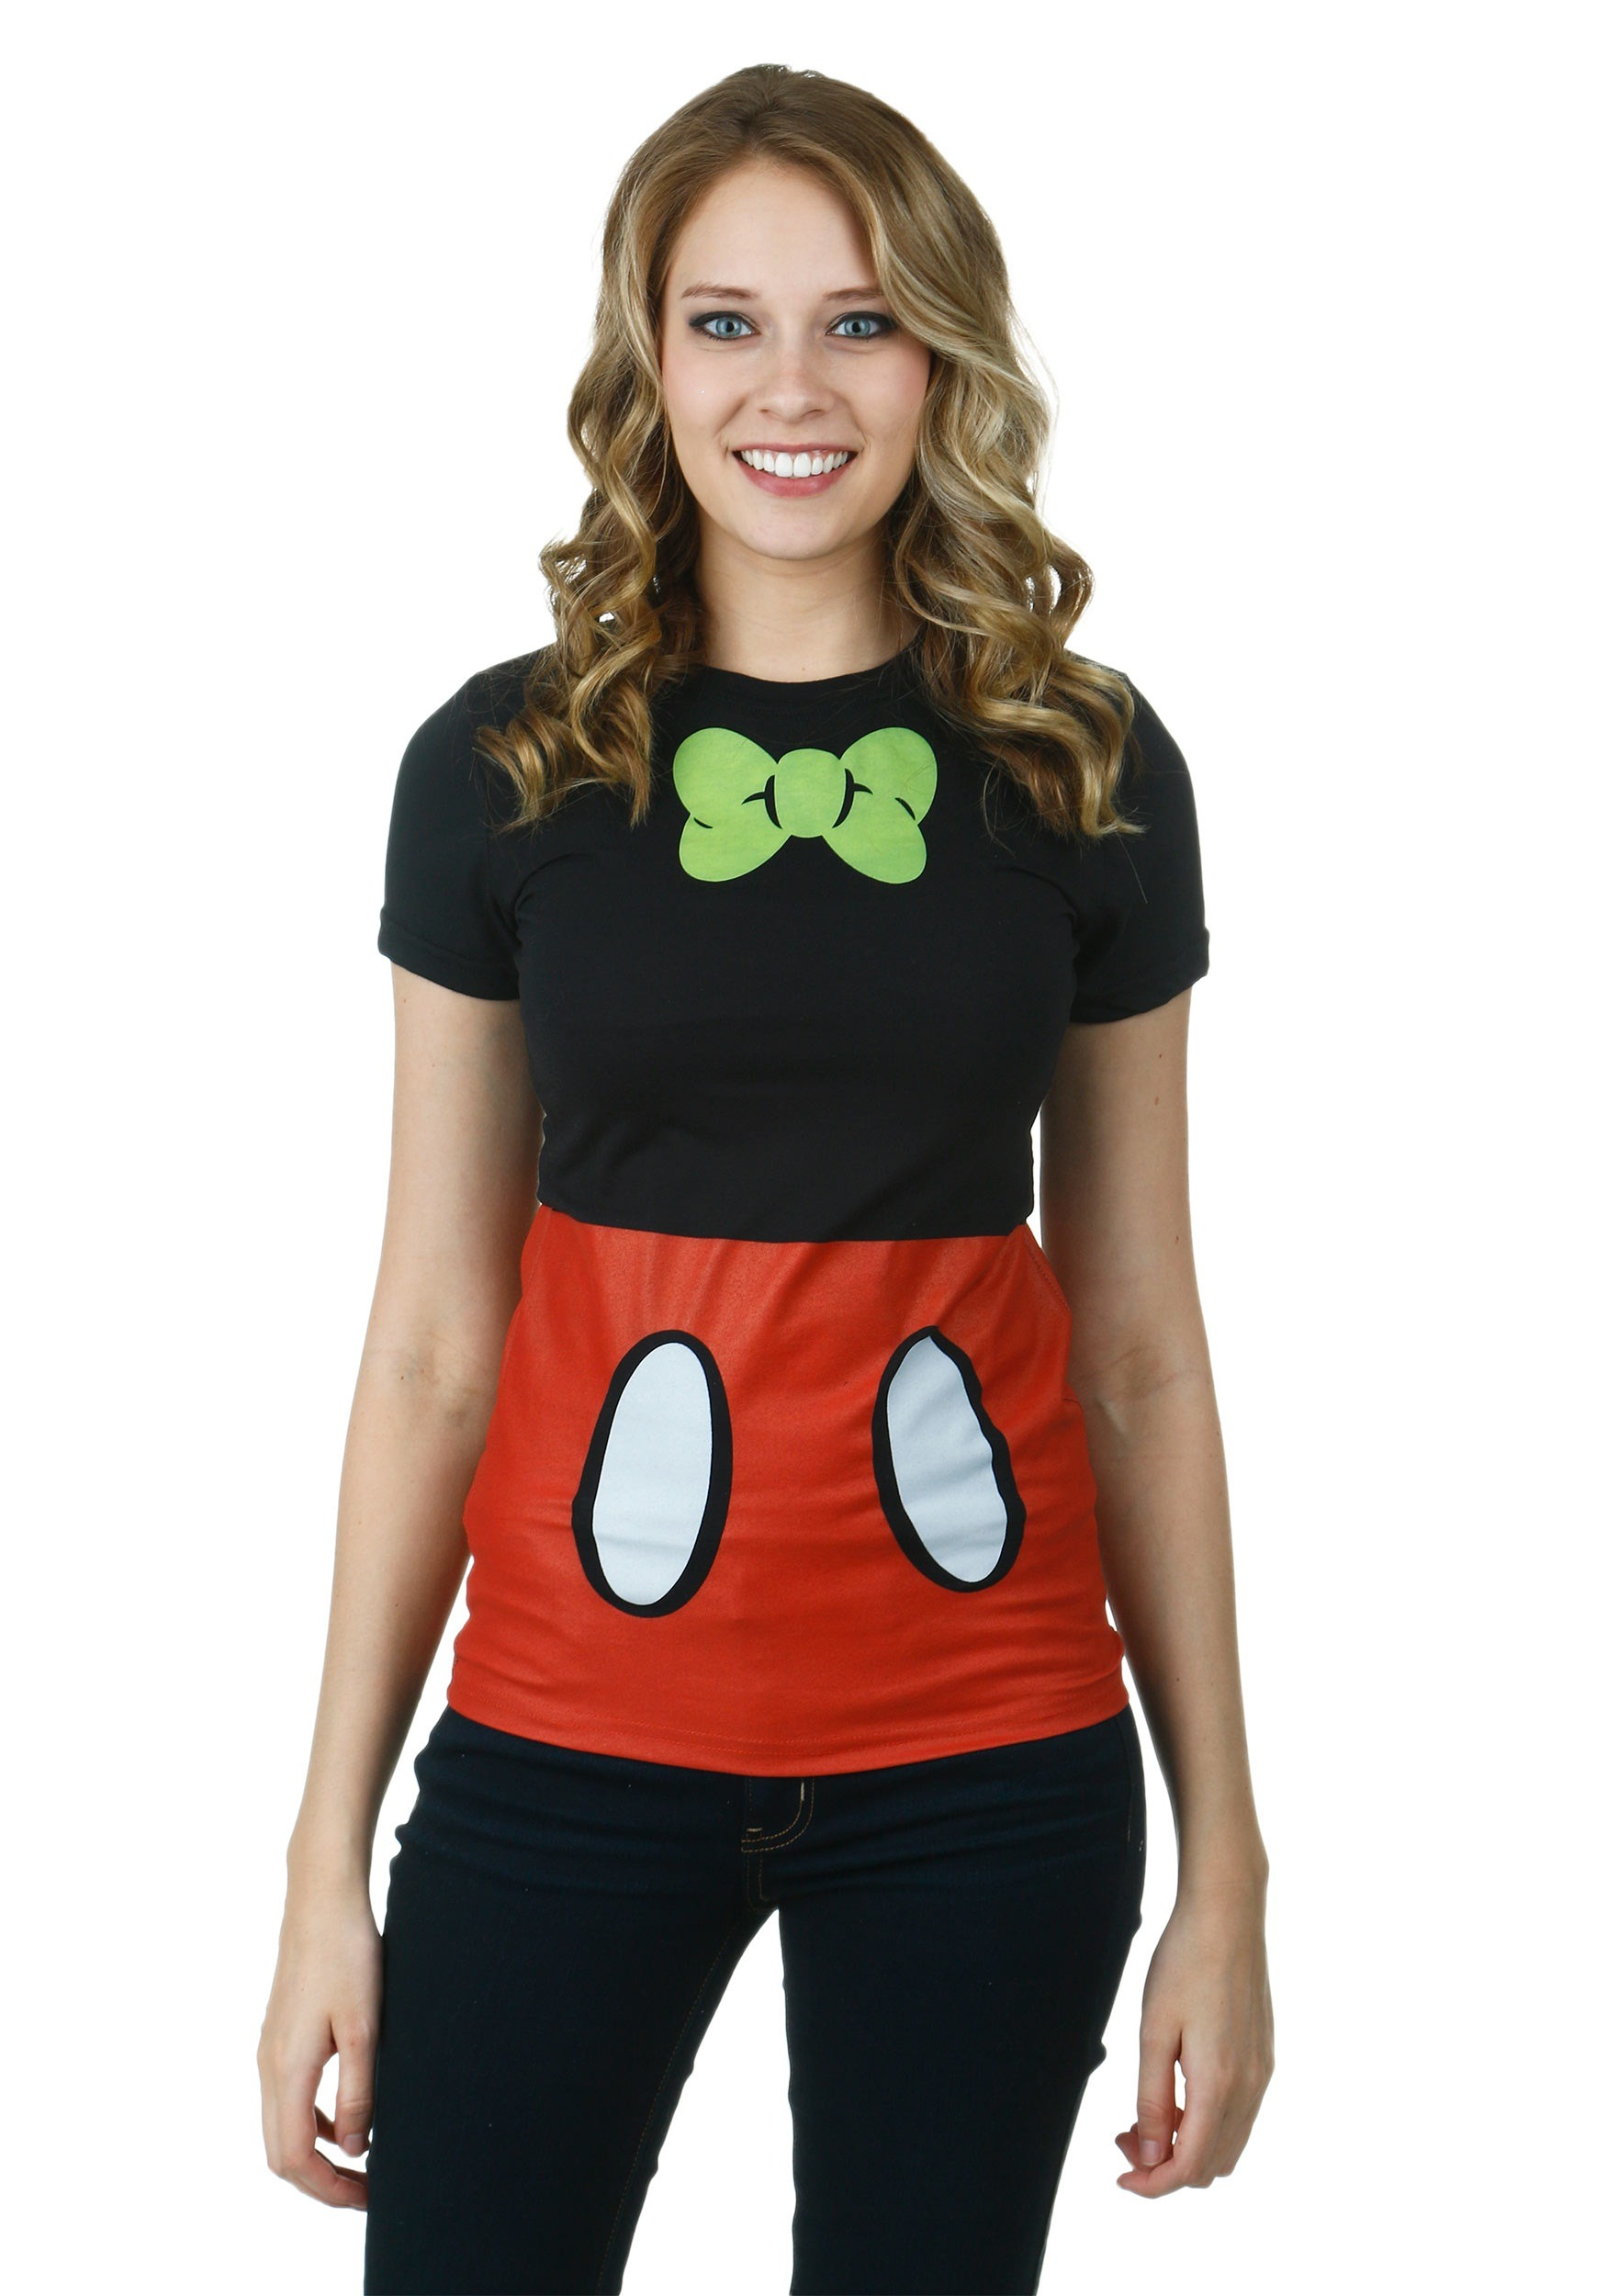 Juniors mickey mouse costume t shirt for Costume t shirts online